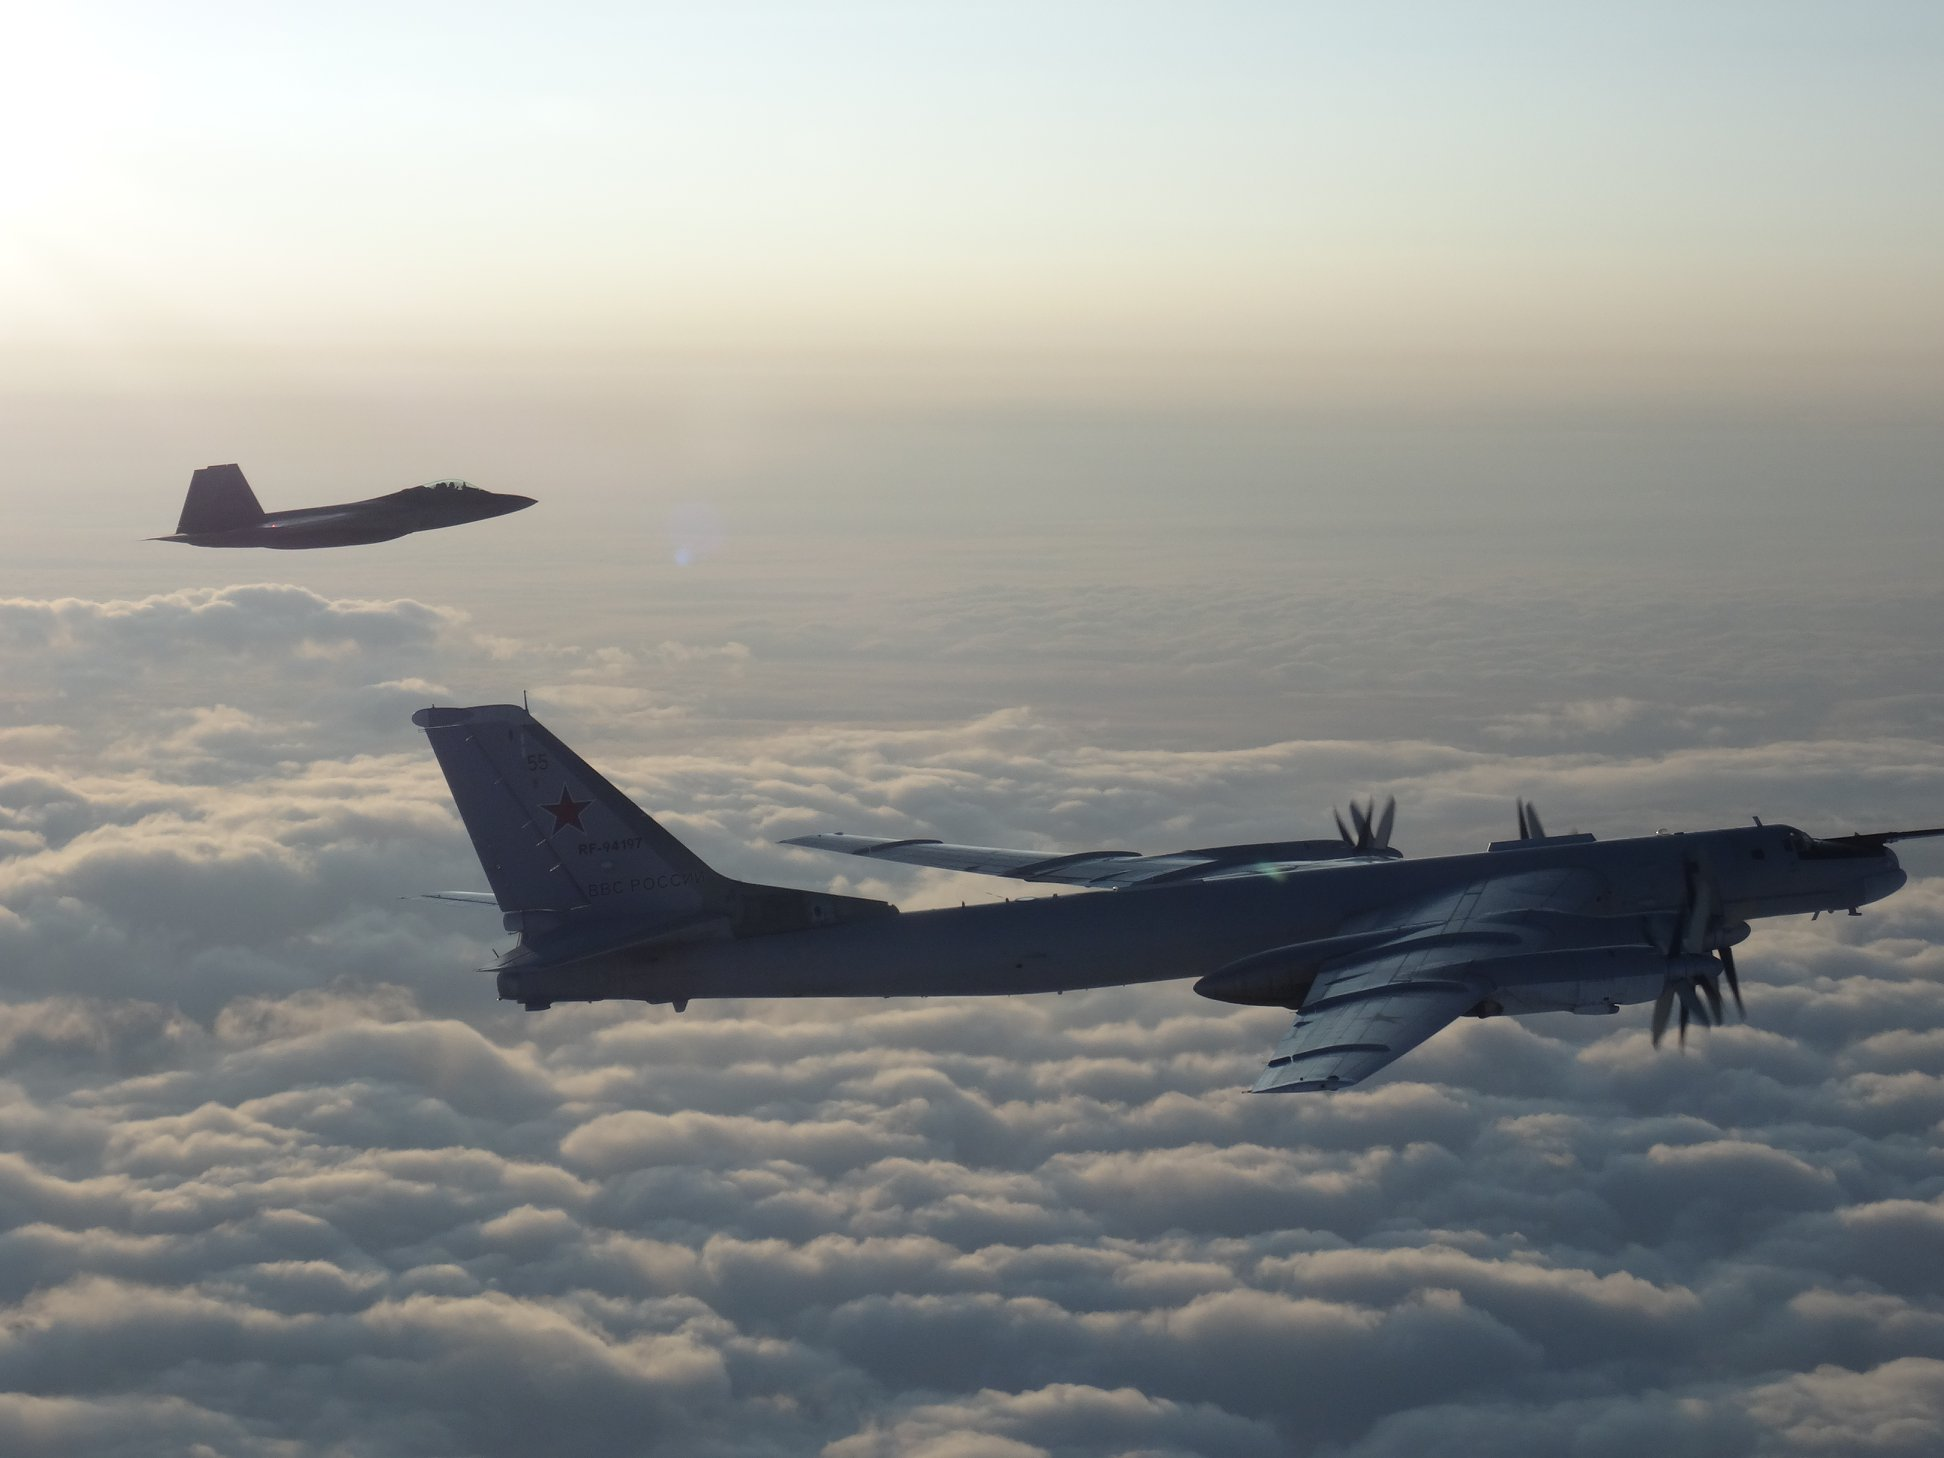 F-22 fighter jets intercept two Russian Tu-95 Bear bombers